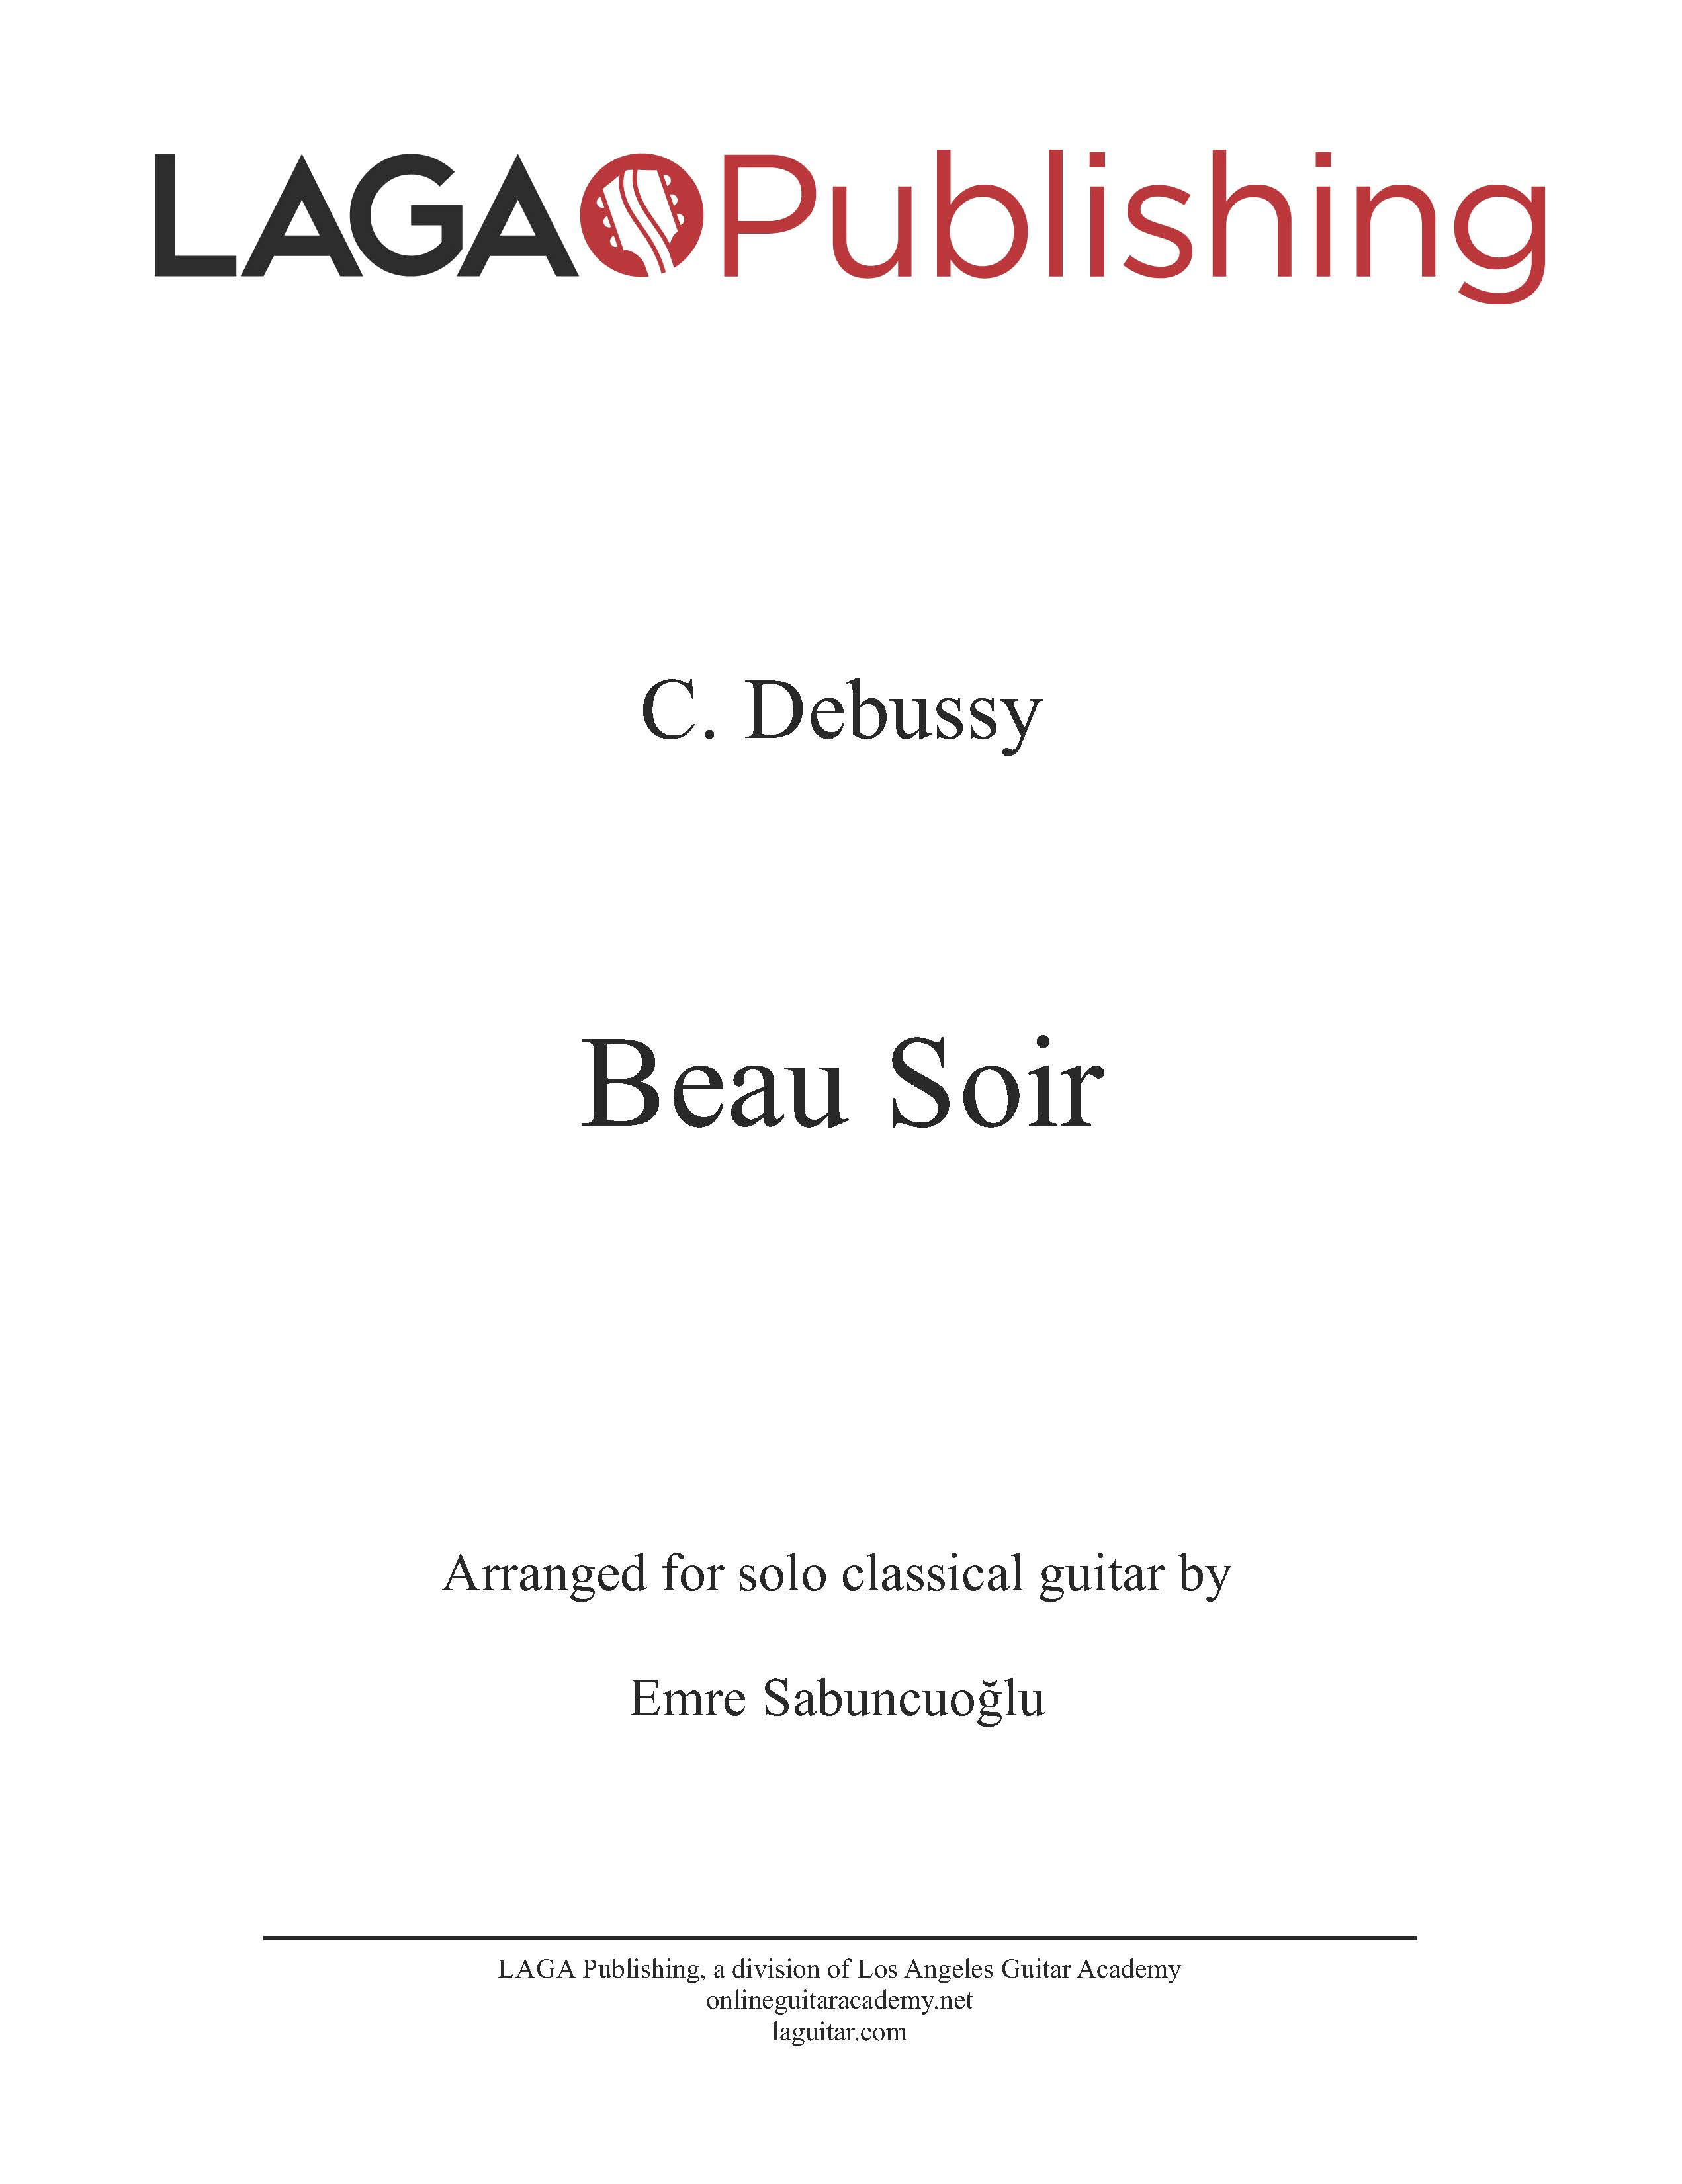 LAGA-Publishing-Debussy-Beau-Soir-Score-and-Tab